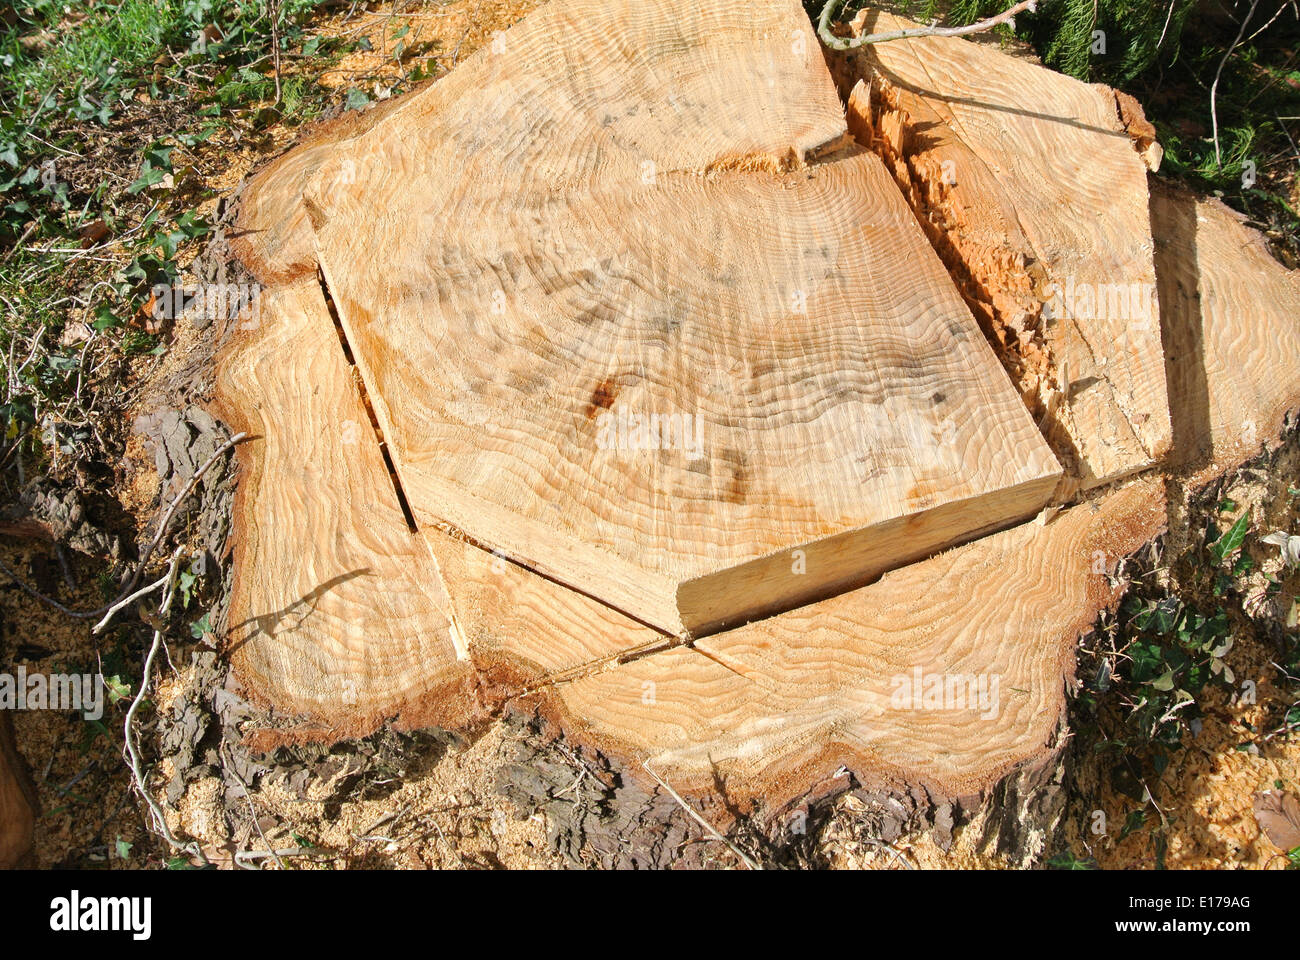 Tree stump cut by a chainsaw - Stock Image